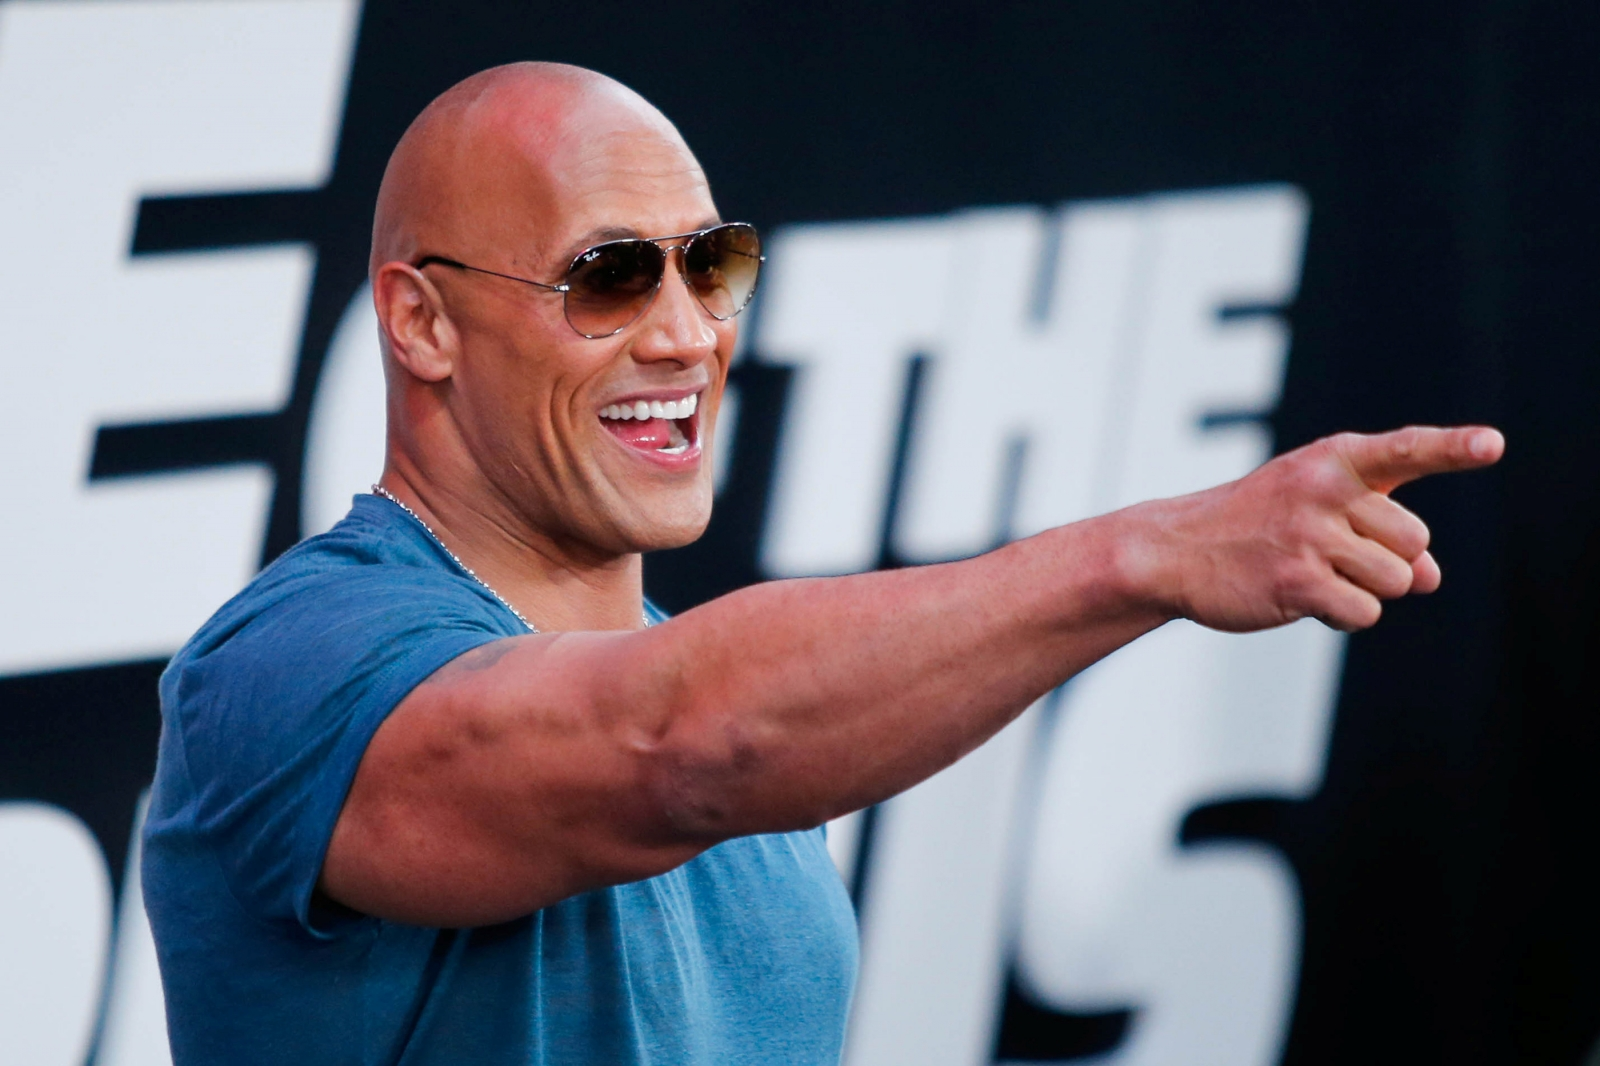 The Rock's 2020 presidential campaign officially filed with USA electoral commission